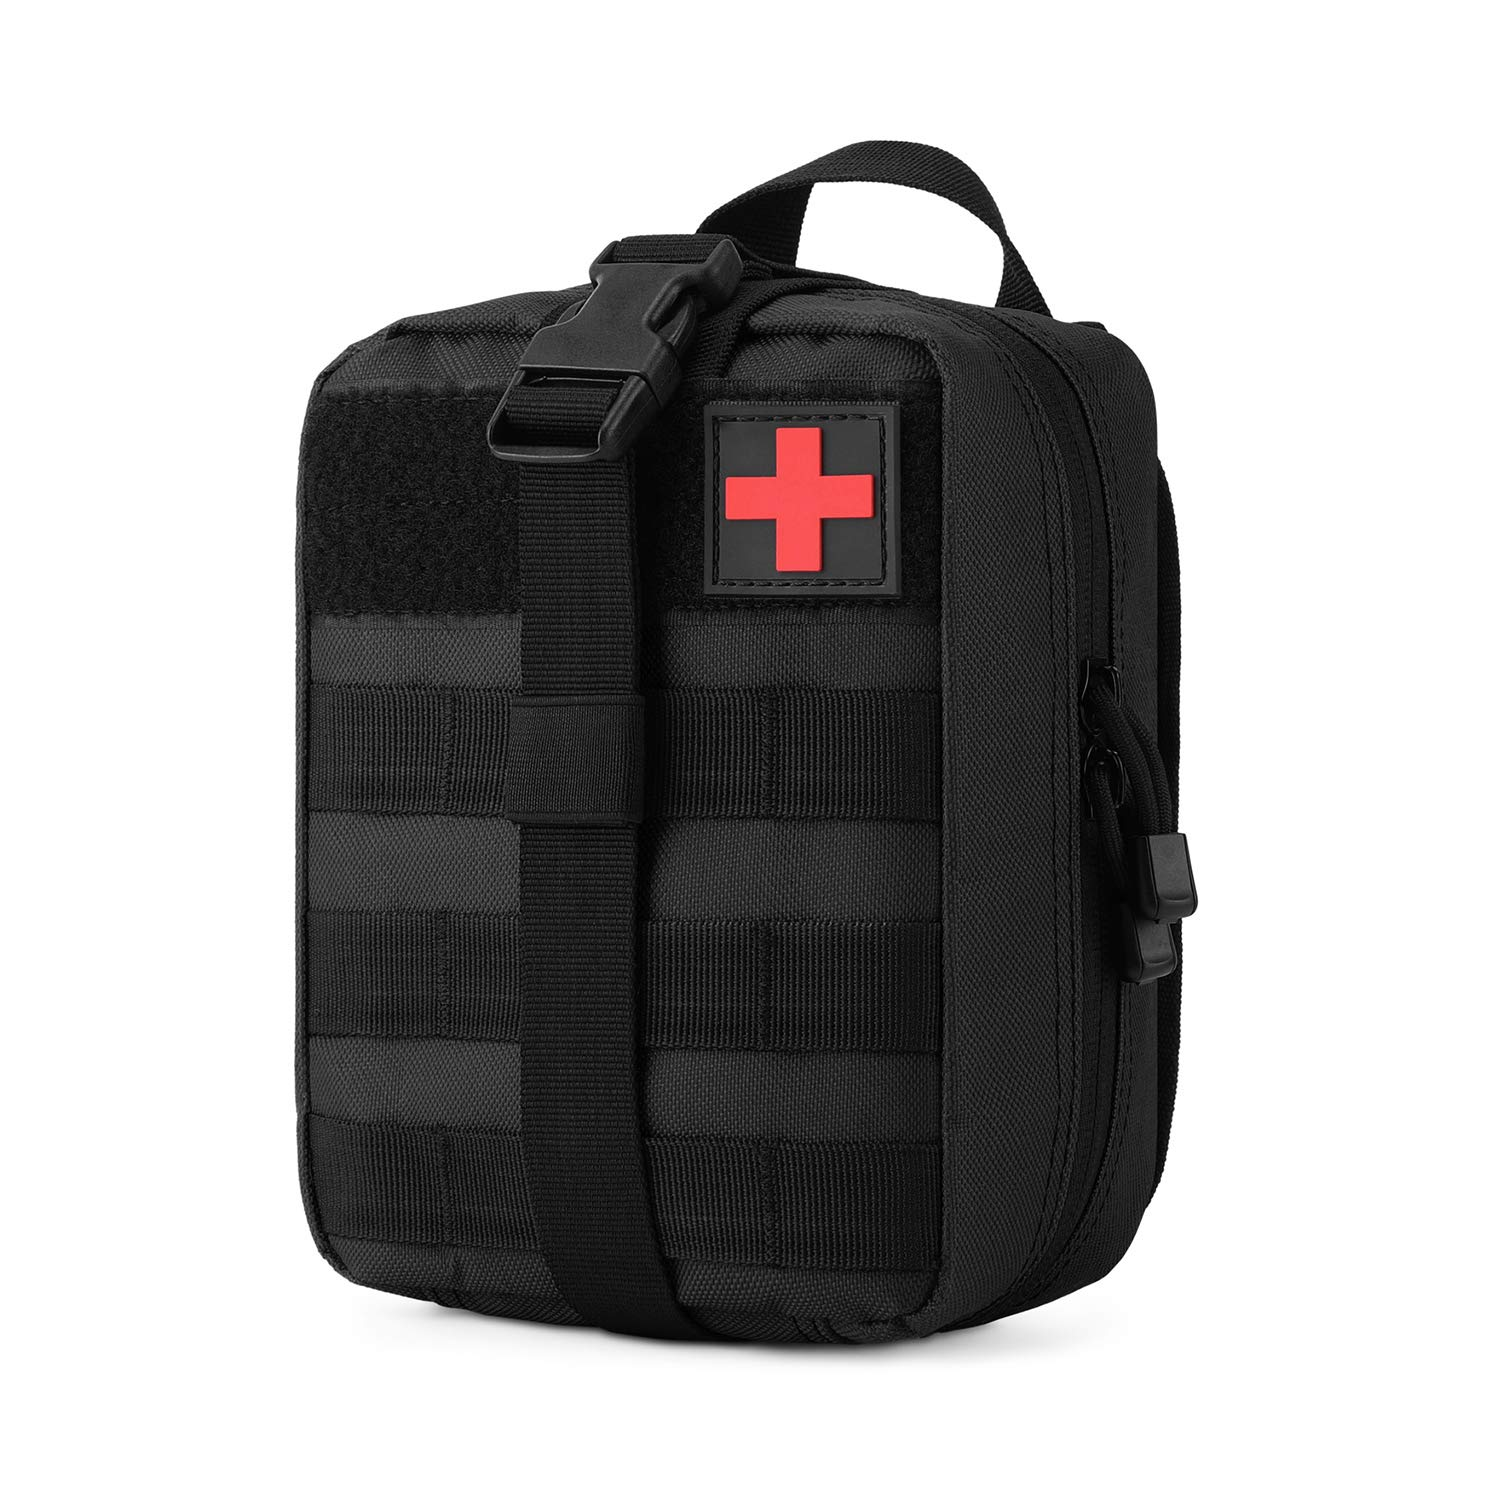 Gonex MOLLE Medical Pouch EMT First Aid Pouch Rip-Away IFAK Tactical Utility Pouch for Outdoor Activities Medical Supplies (Bag Only)